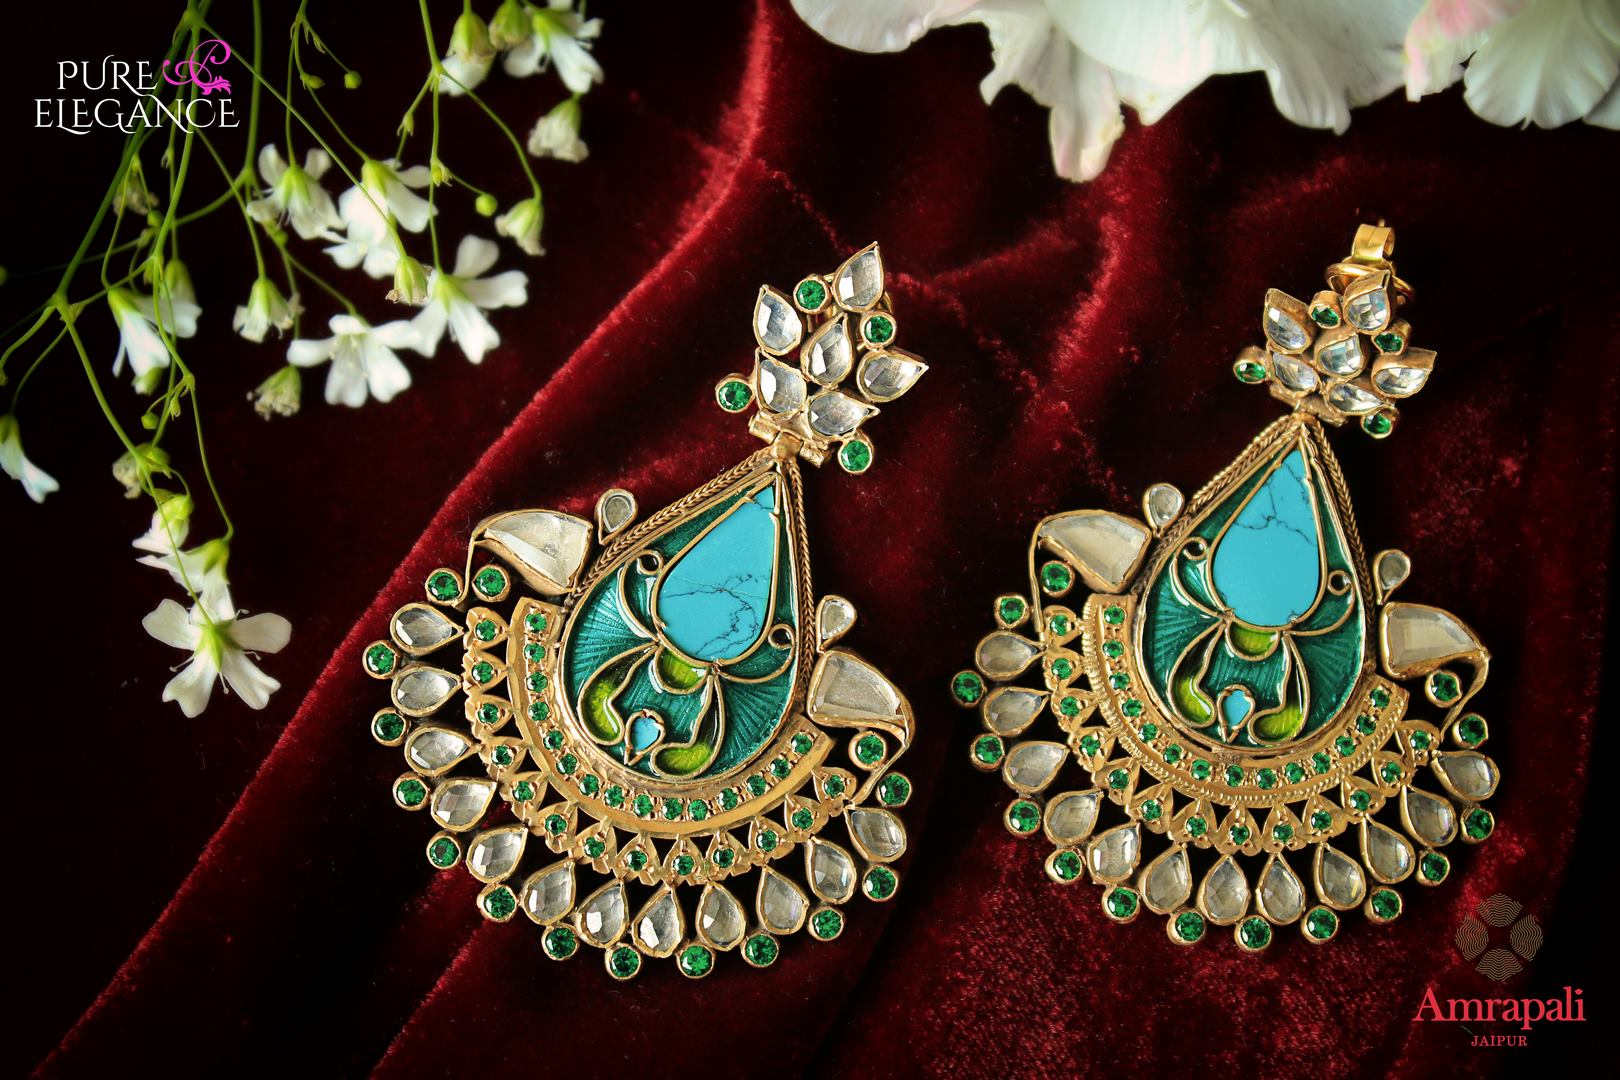 Beautiful silver gold plated enamel glass earrings buy online in USA from Amrapali. If you are looking for Indian earrings in USA, then Pure Elegance Indian fashion store is the place for you. A whole range of exquisite of ethnic Indian wedding jewelry is waiting for you on our shelves, you can also opt to shop online.-flat lay